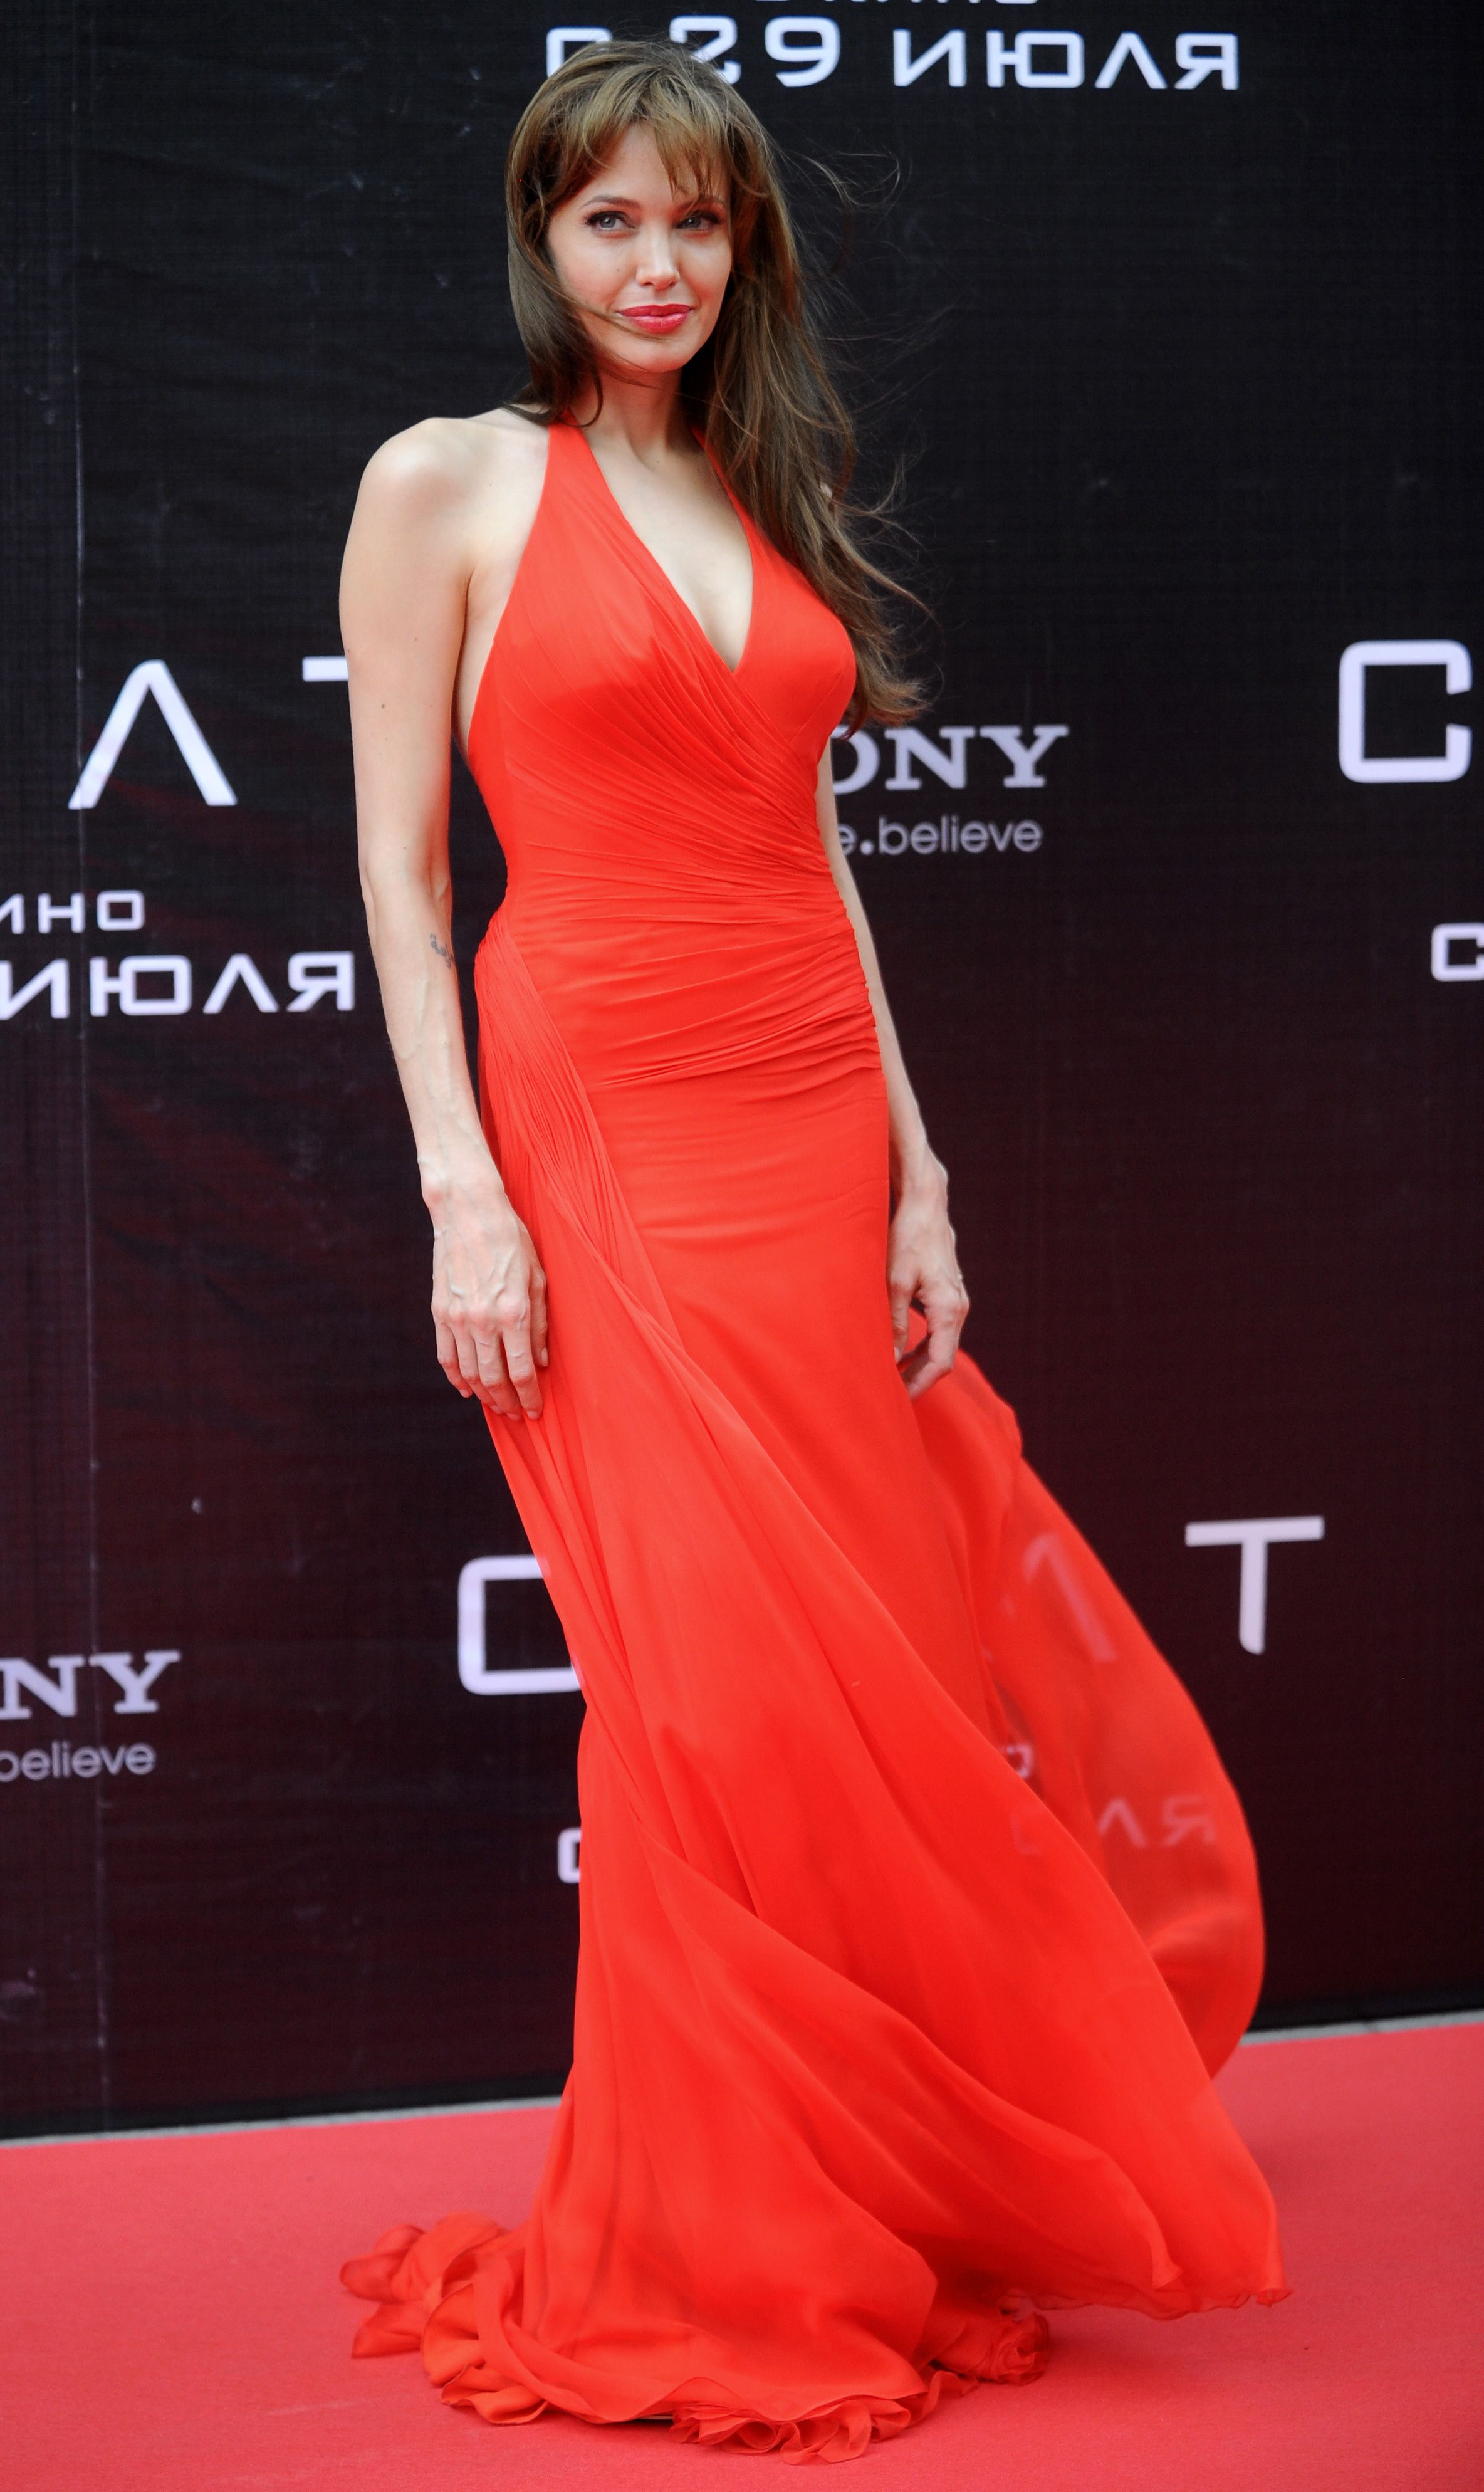 Red Dress Angelina Jolie Fashion Red Evening Gown Angelina Jolie Style [ 3976 x 2368 Pixel ]